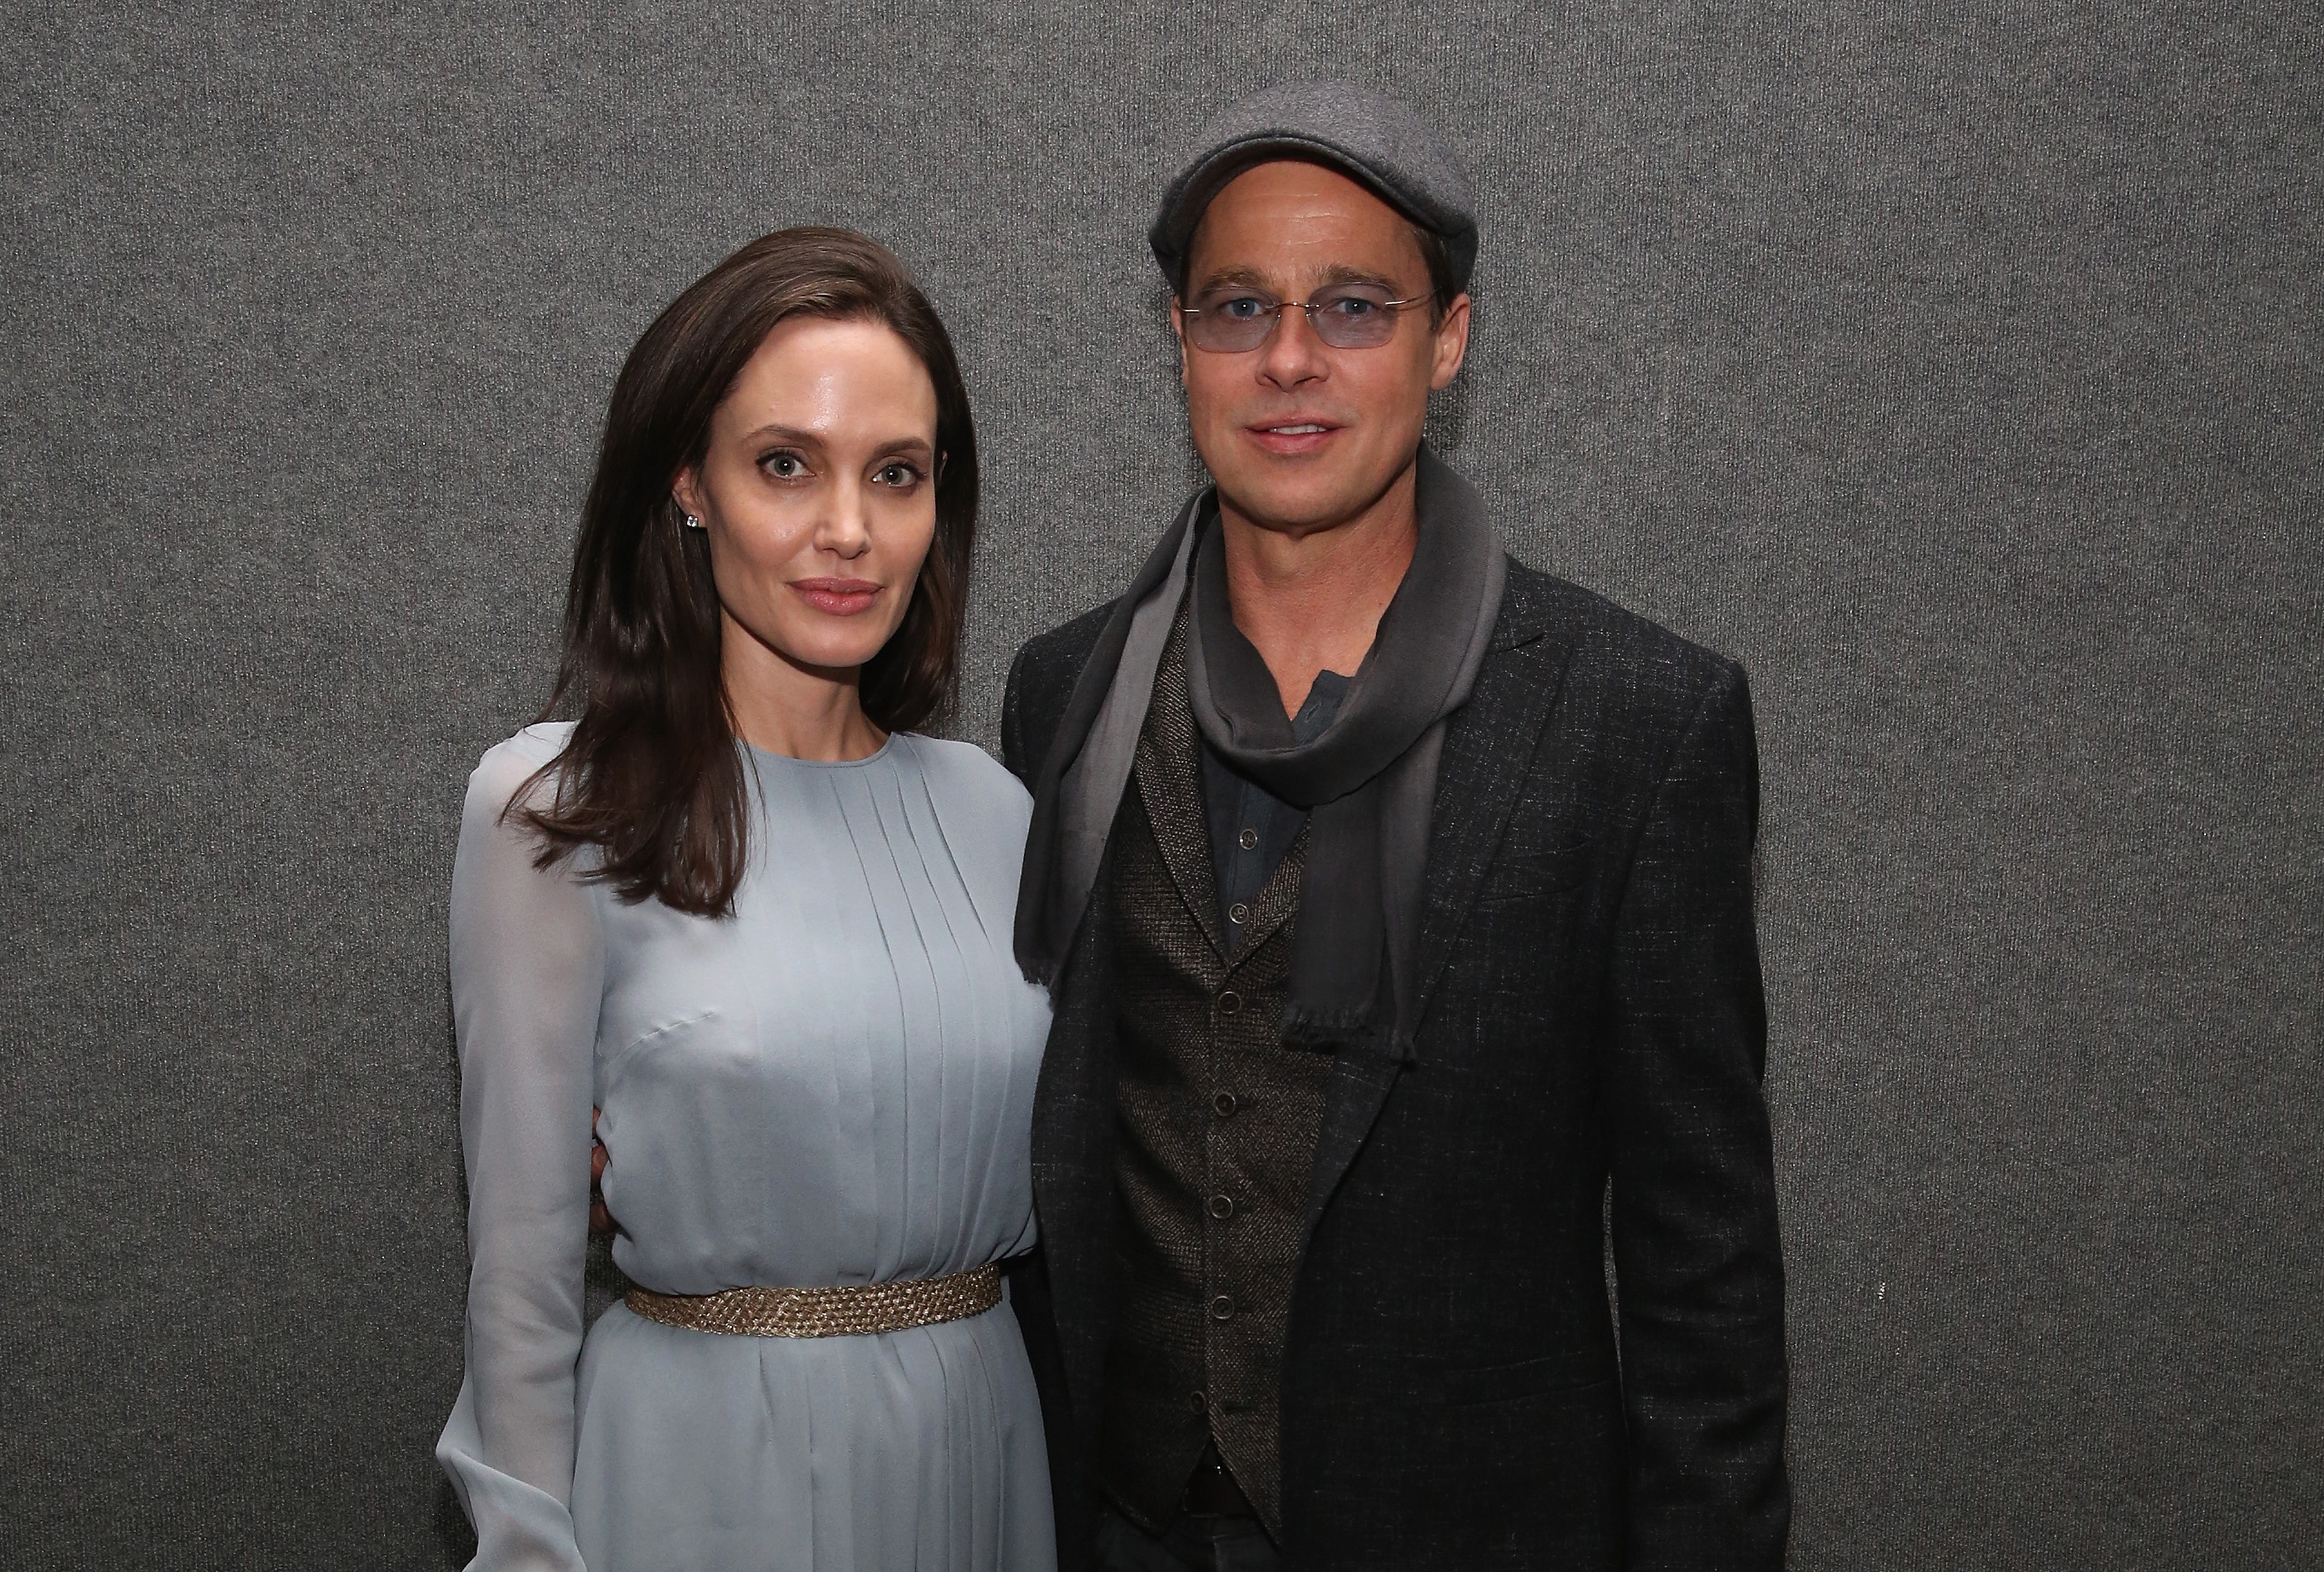 Angelina Jolie and Brad Pitt attend an official Academy Screening of BY THE SEA hosted by The Academy Of Motion Picture Arts And Sciences in New York City on Nov. 3, 2015.